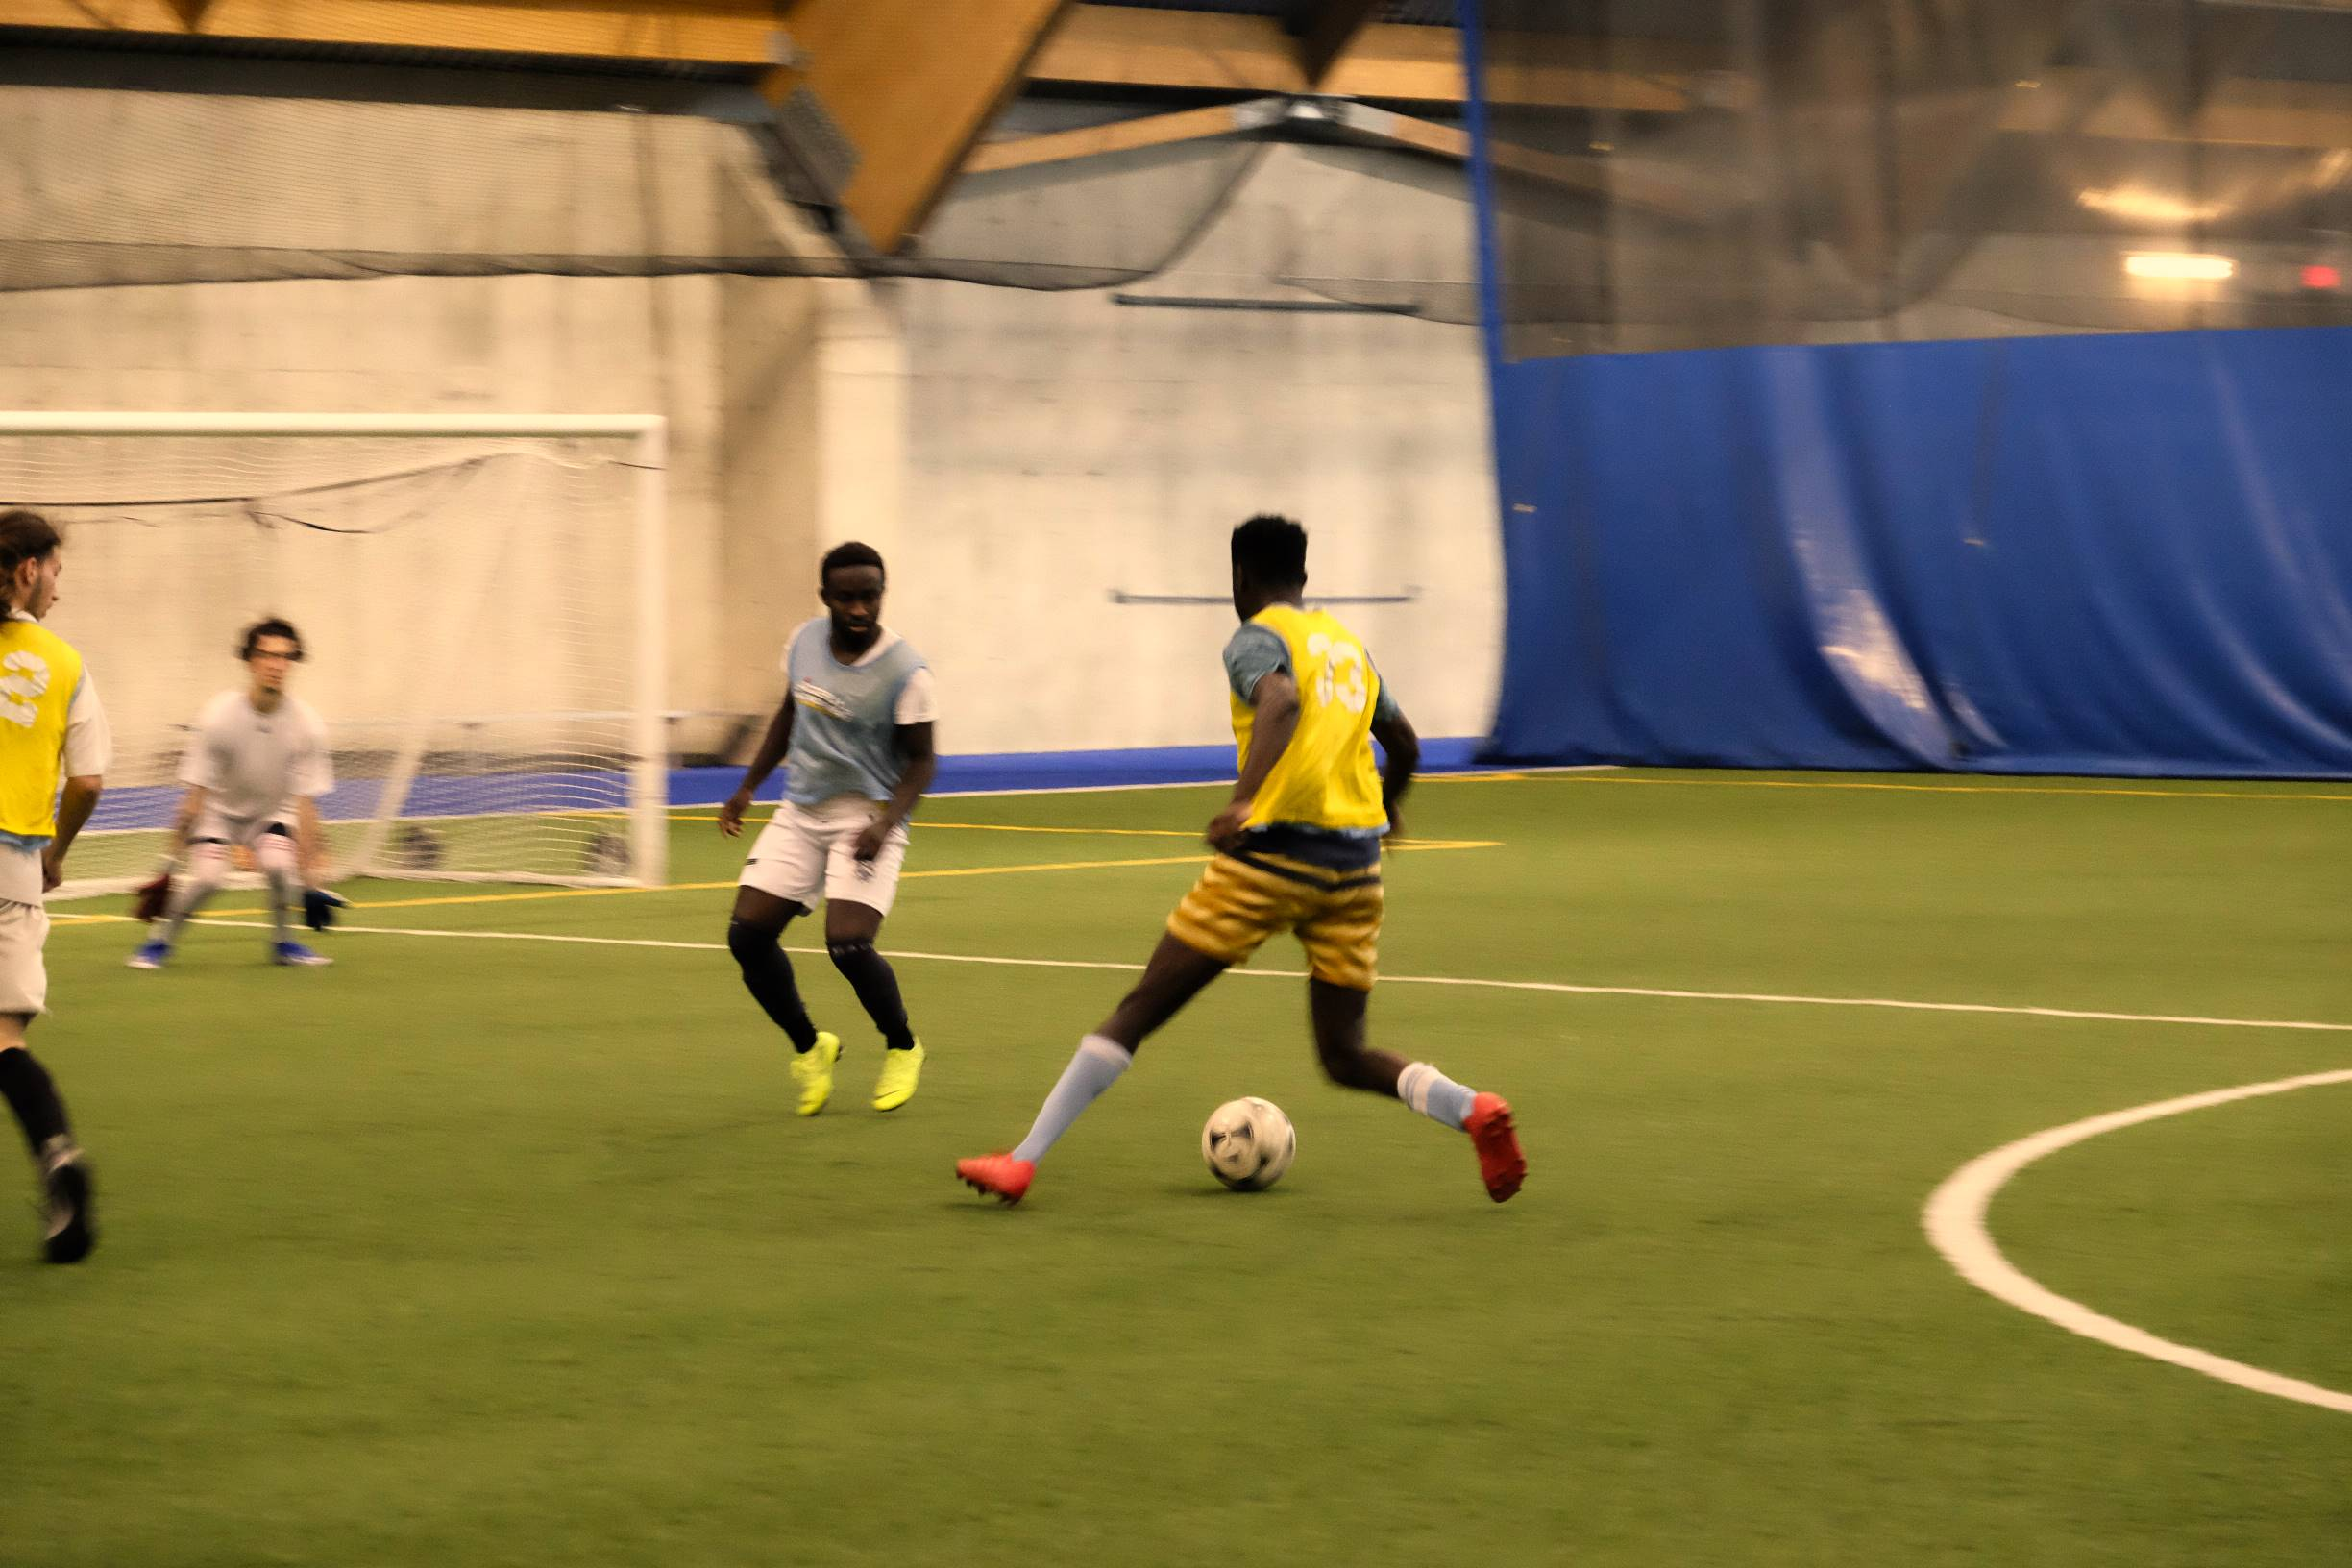 Institut jmg try out RC Lens 2019 clip 3 photos_17